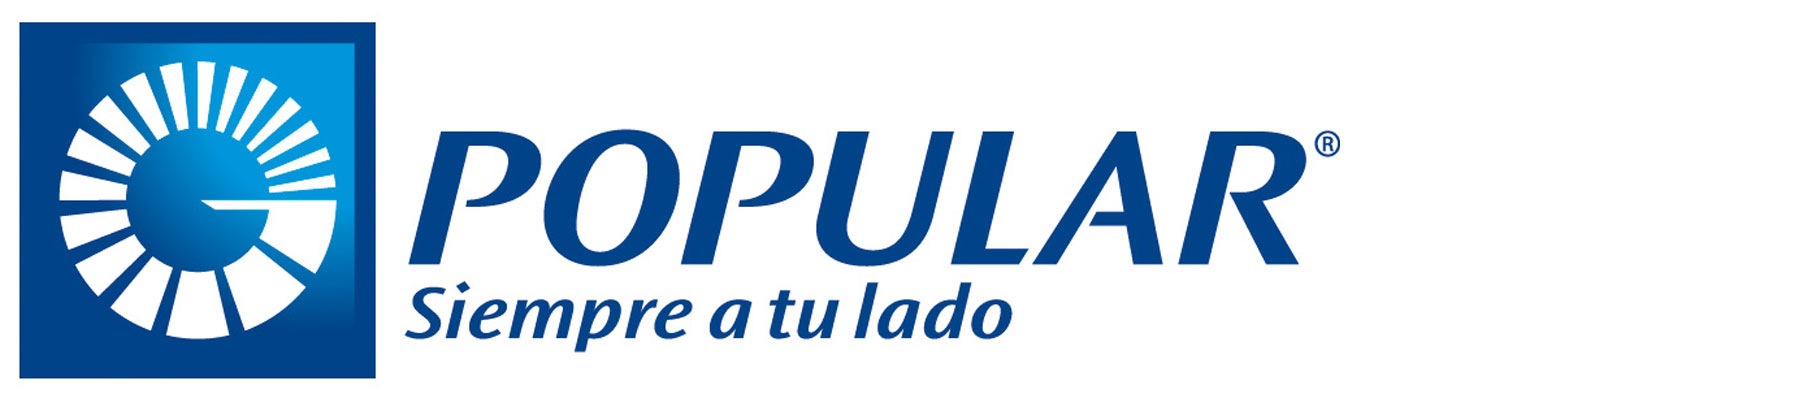 banco-popular-dominicano-logo